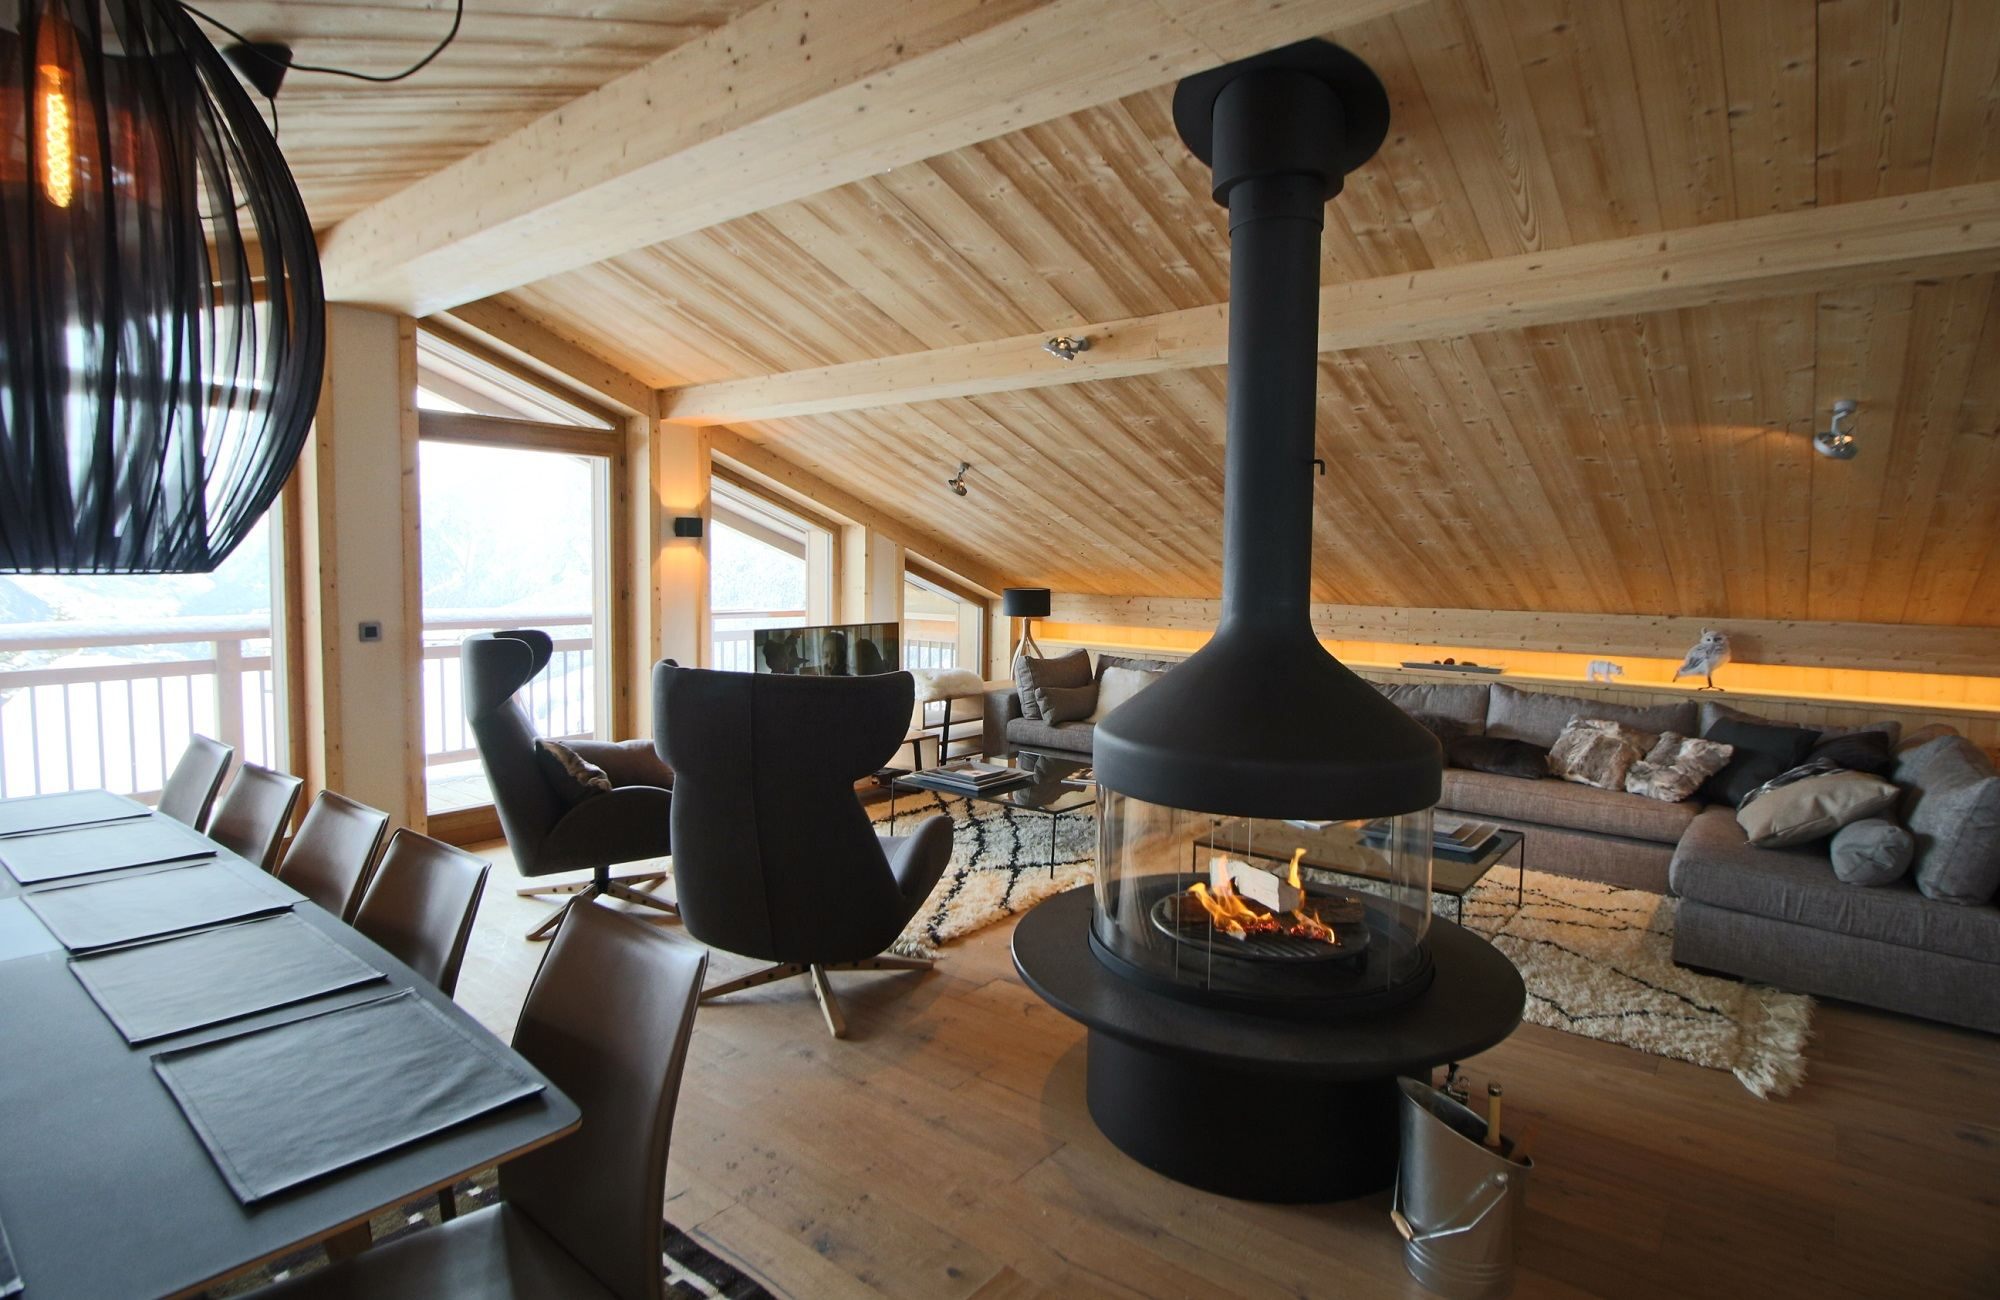 Maison unifamiliale pour l Vente à Chalet Monch Courchevel Courchevel, Rhone-Alpes, 73120 France